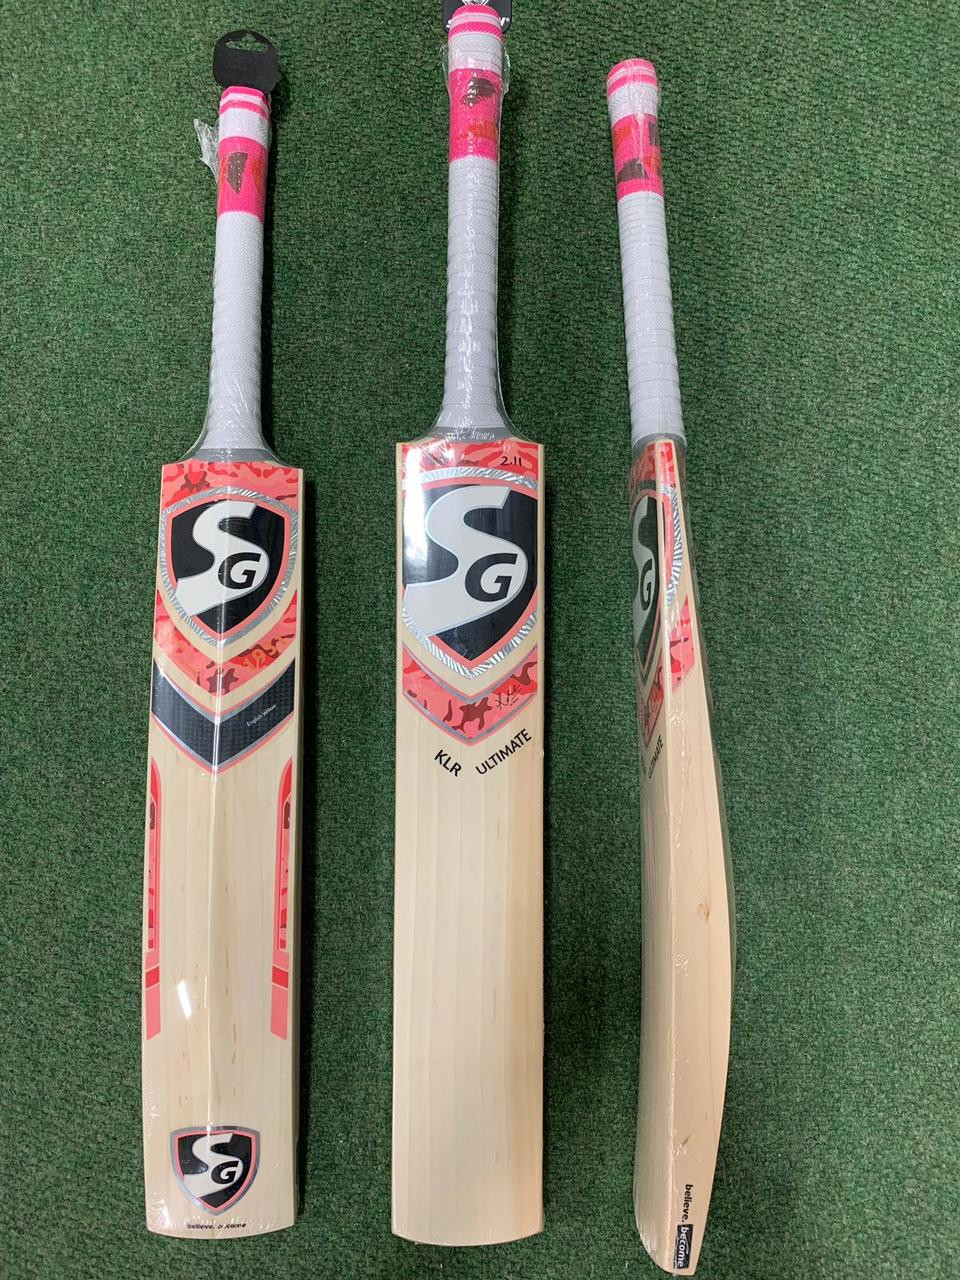 2dec69b1b SG KLR Ultimate Cricket Bat 2019